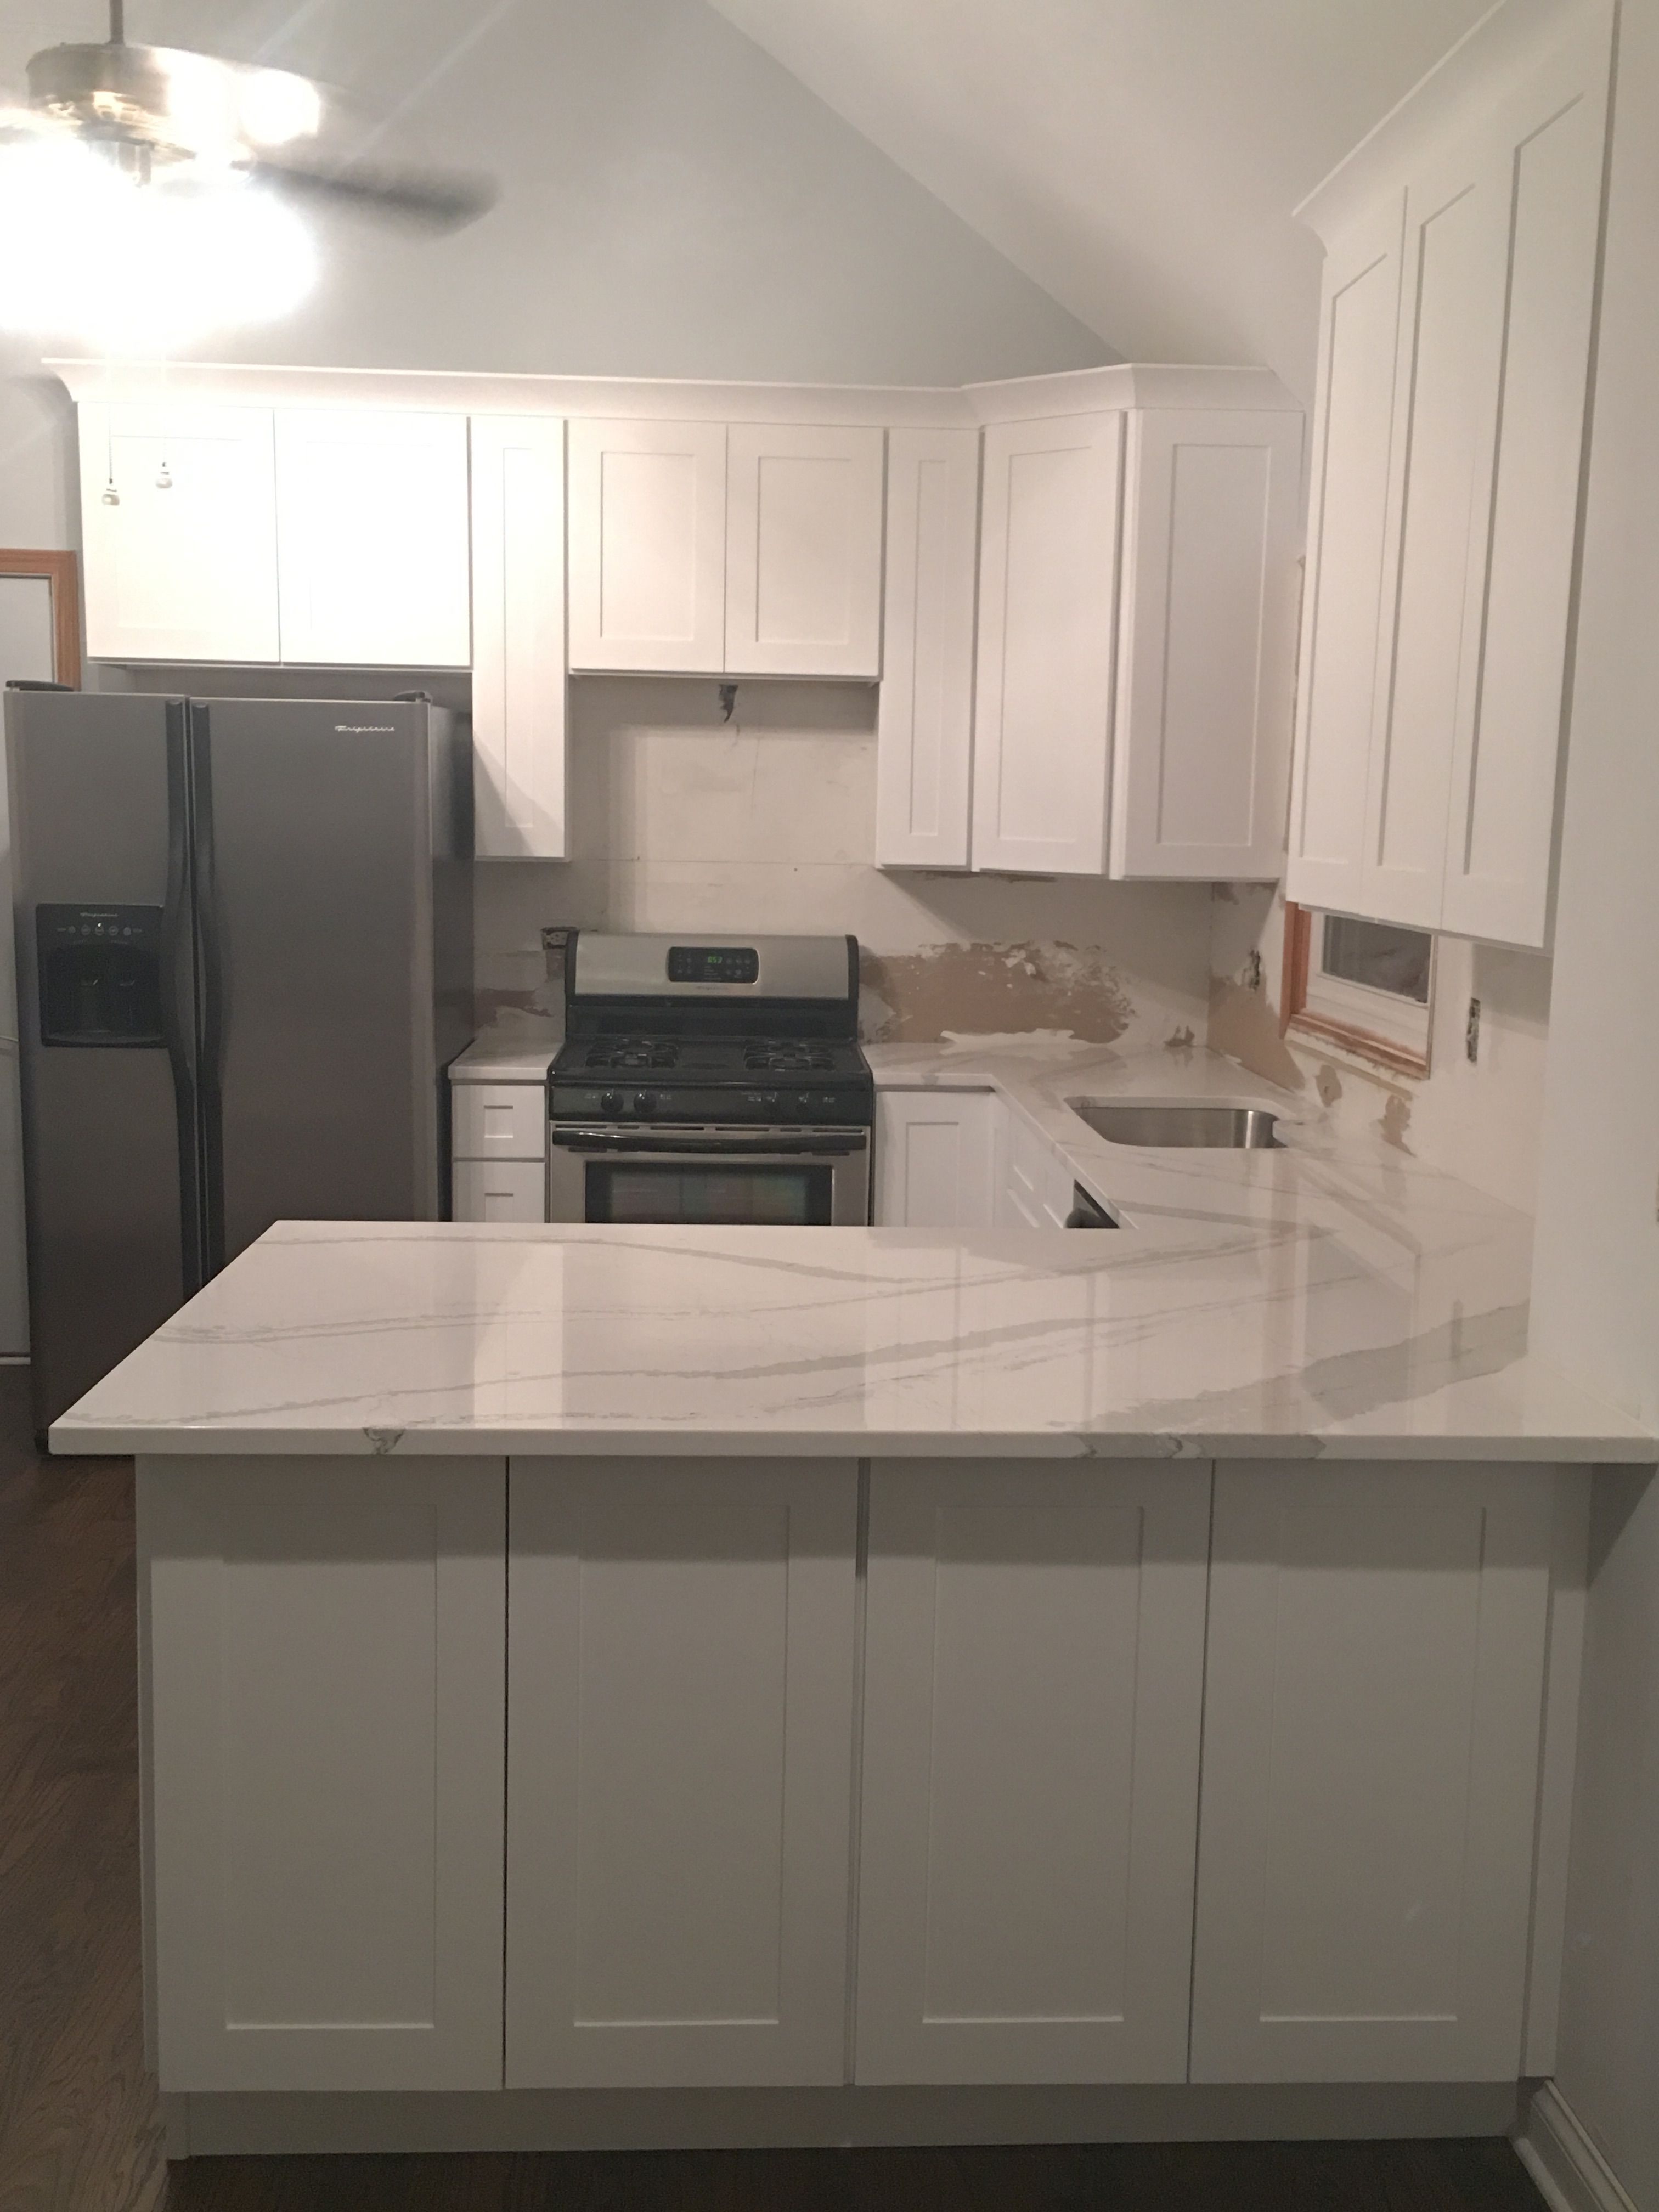 Kitchen renovation all white cabinets with quartz for Kitchen renovations with white cabinets